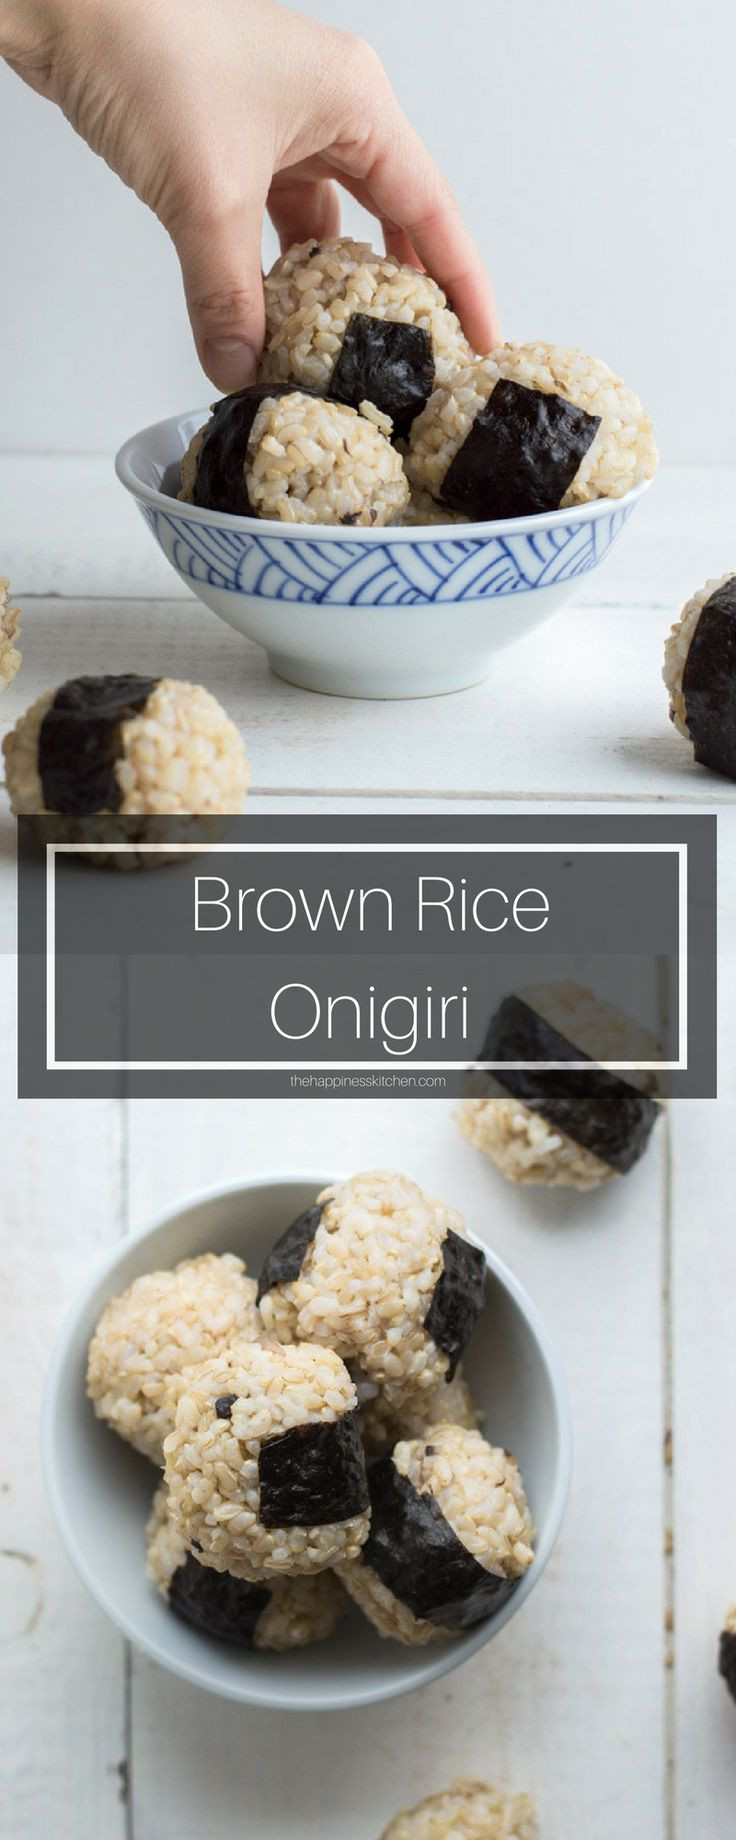 Brown rice onigiri is a great, little healthy snack. It's filled with a flavourful garlic-ginger mushroom filling.